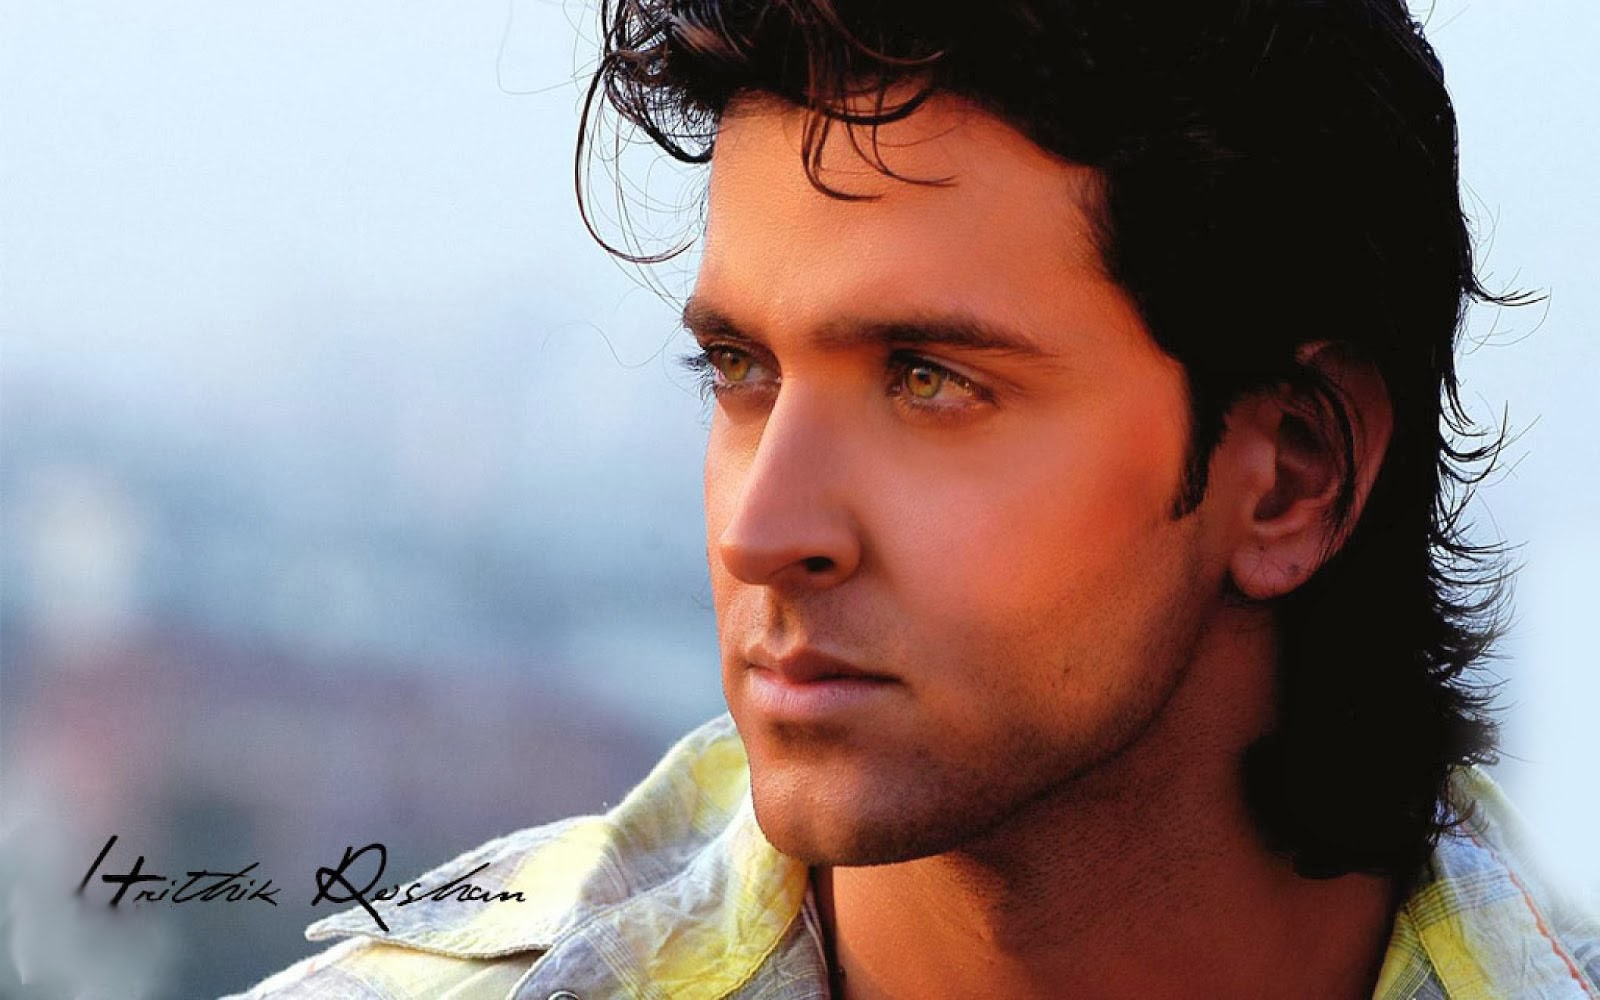 Hrithik roshan hd wallpapers free download unique wallpapers - Hrithik hd pic ...